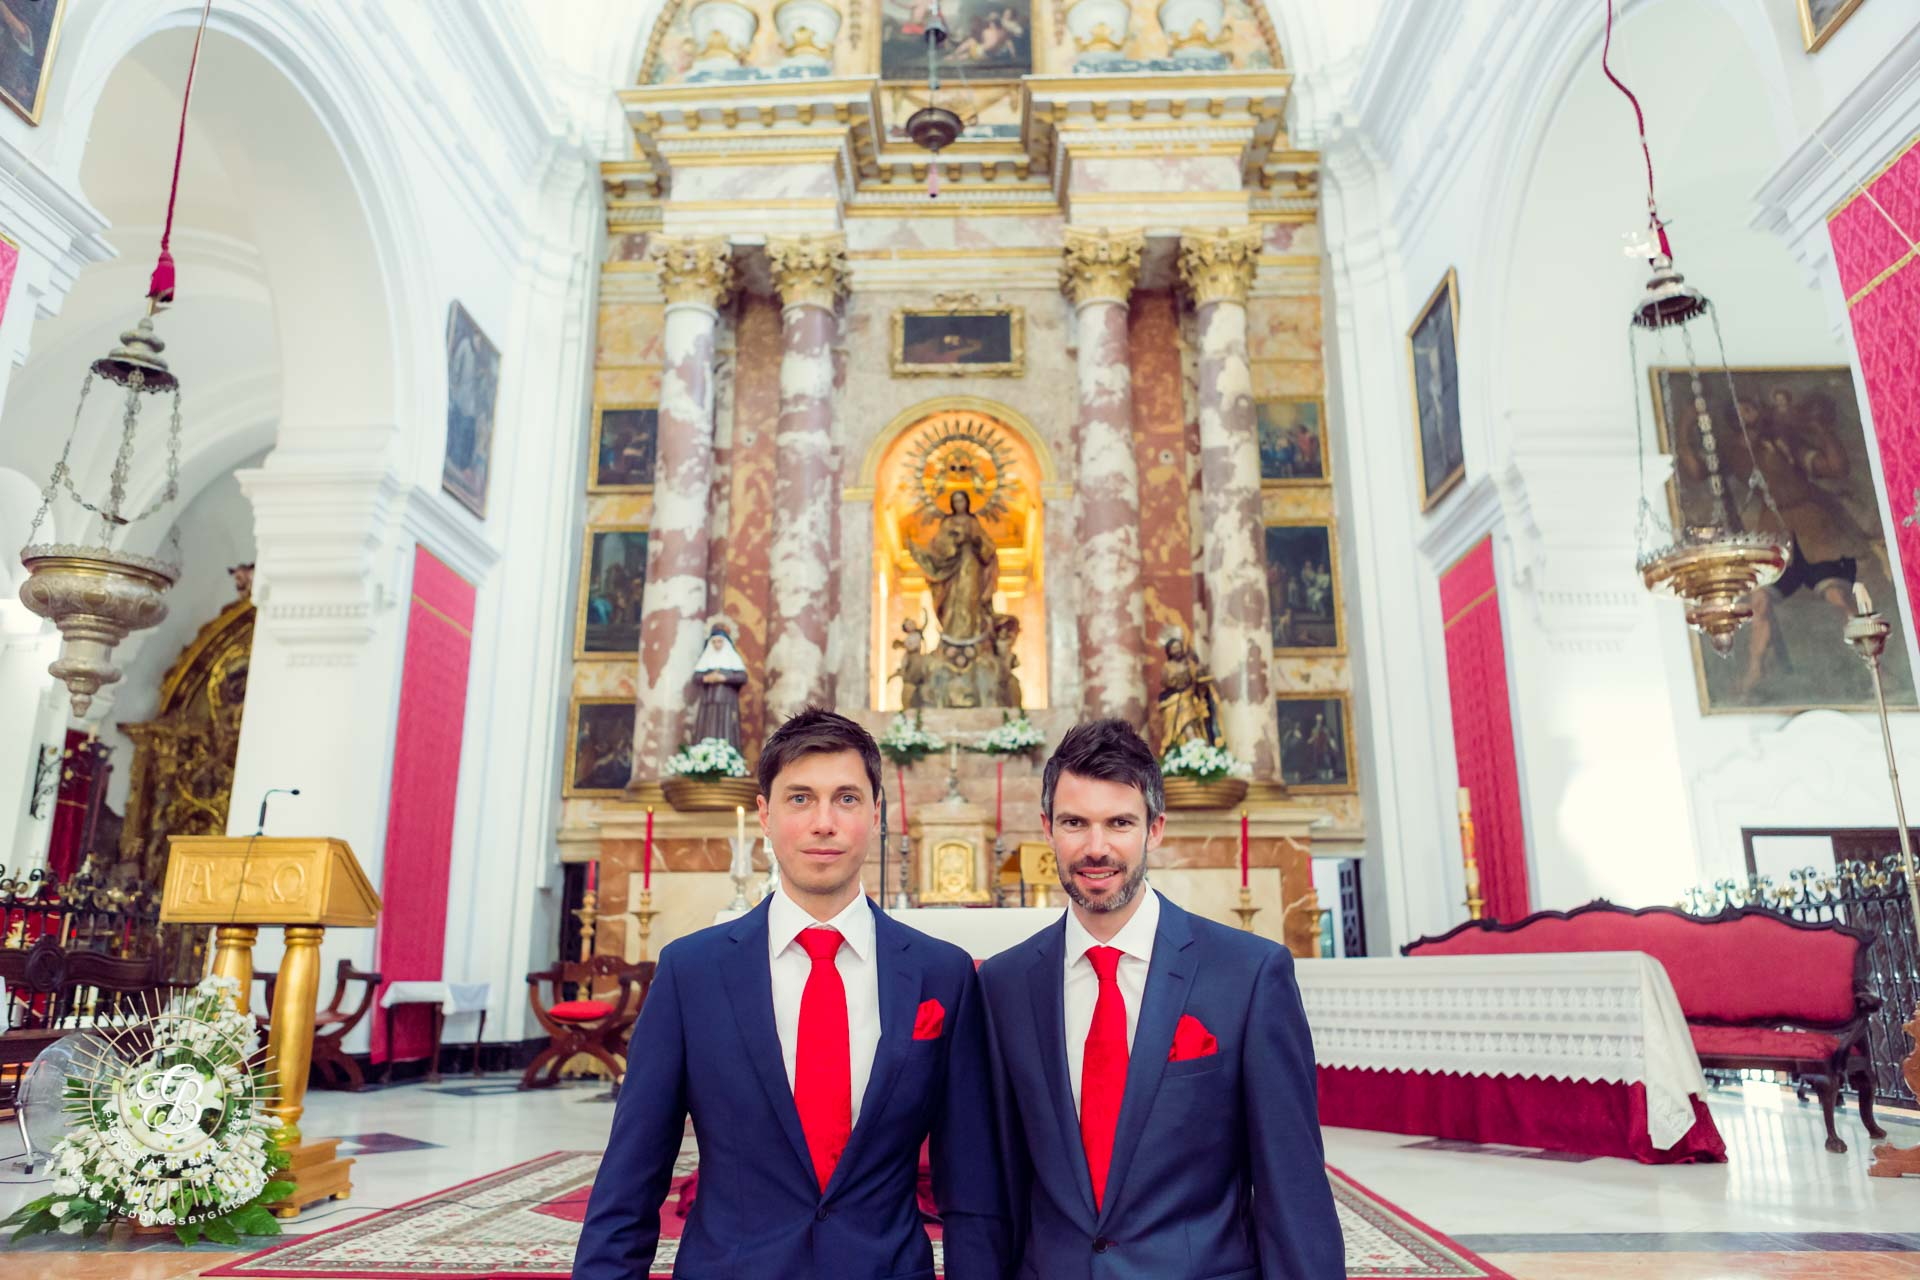 Groom and best man in chruch